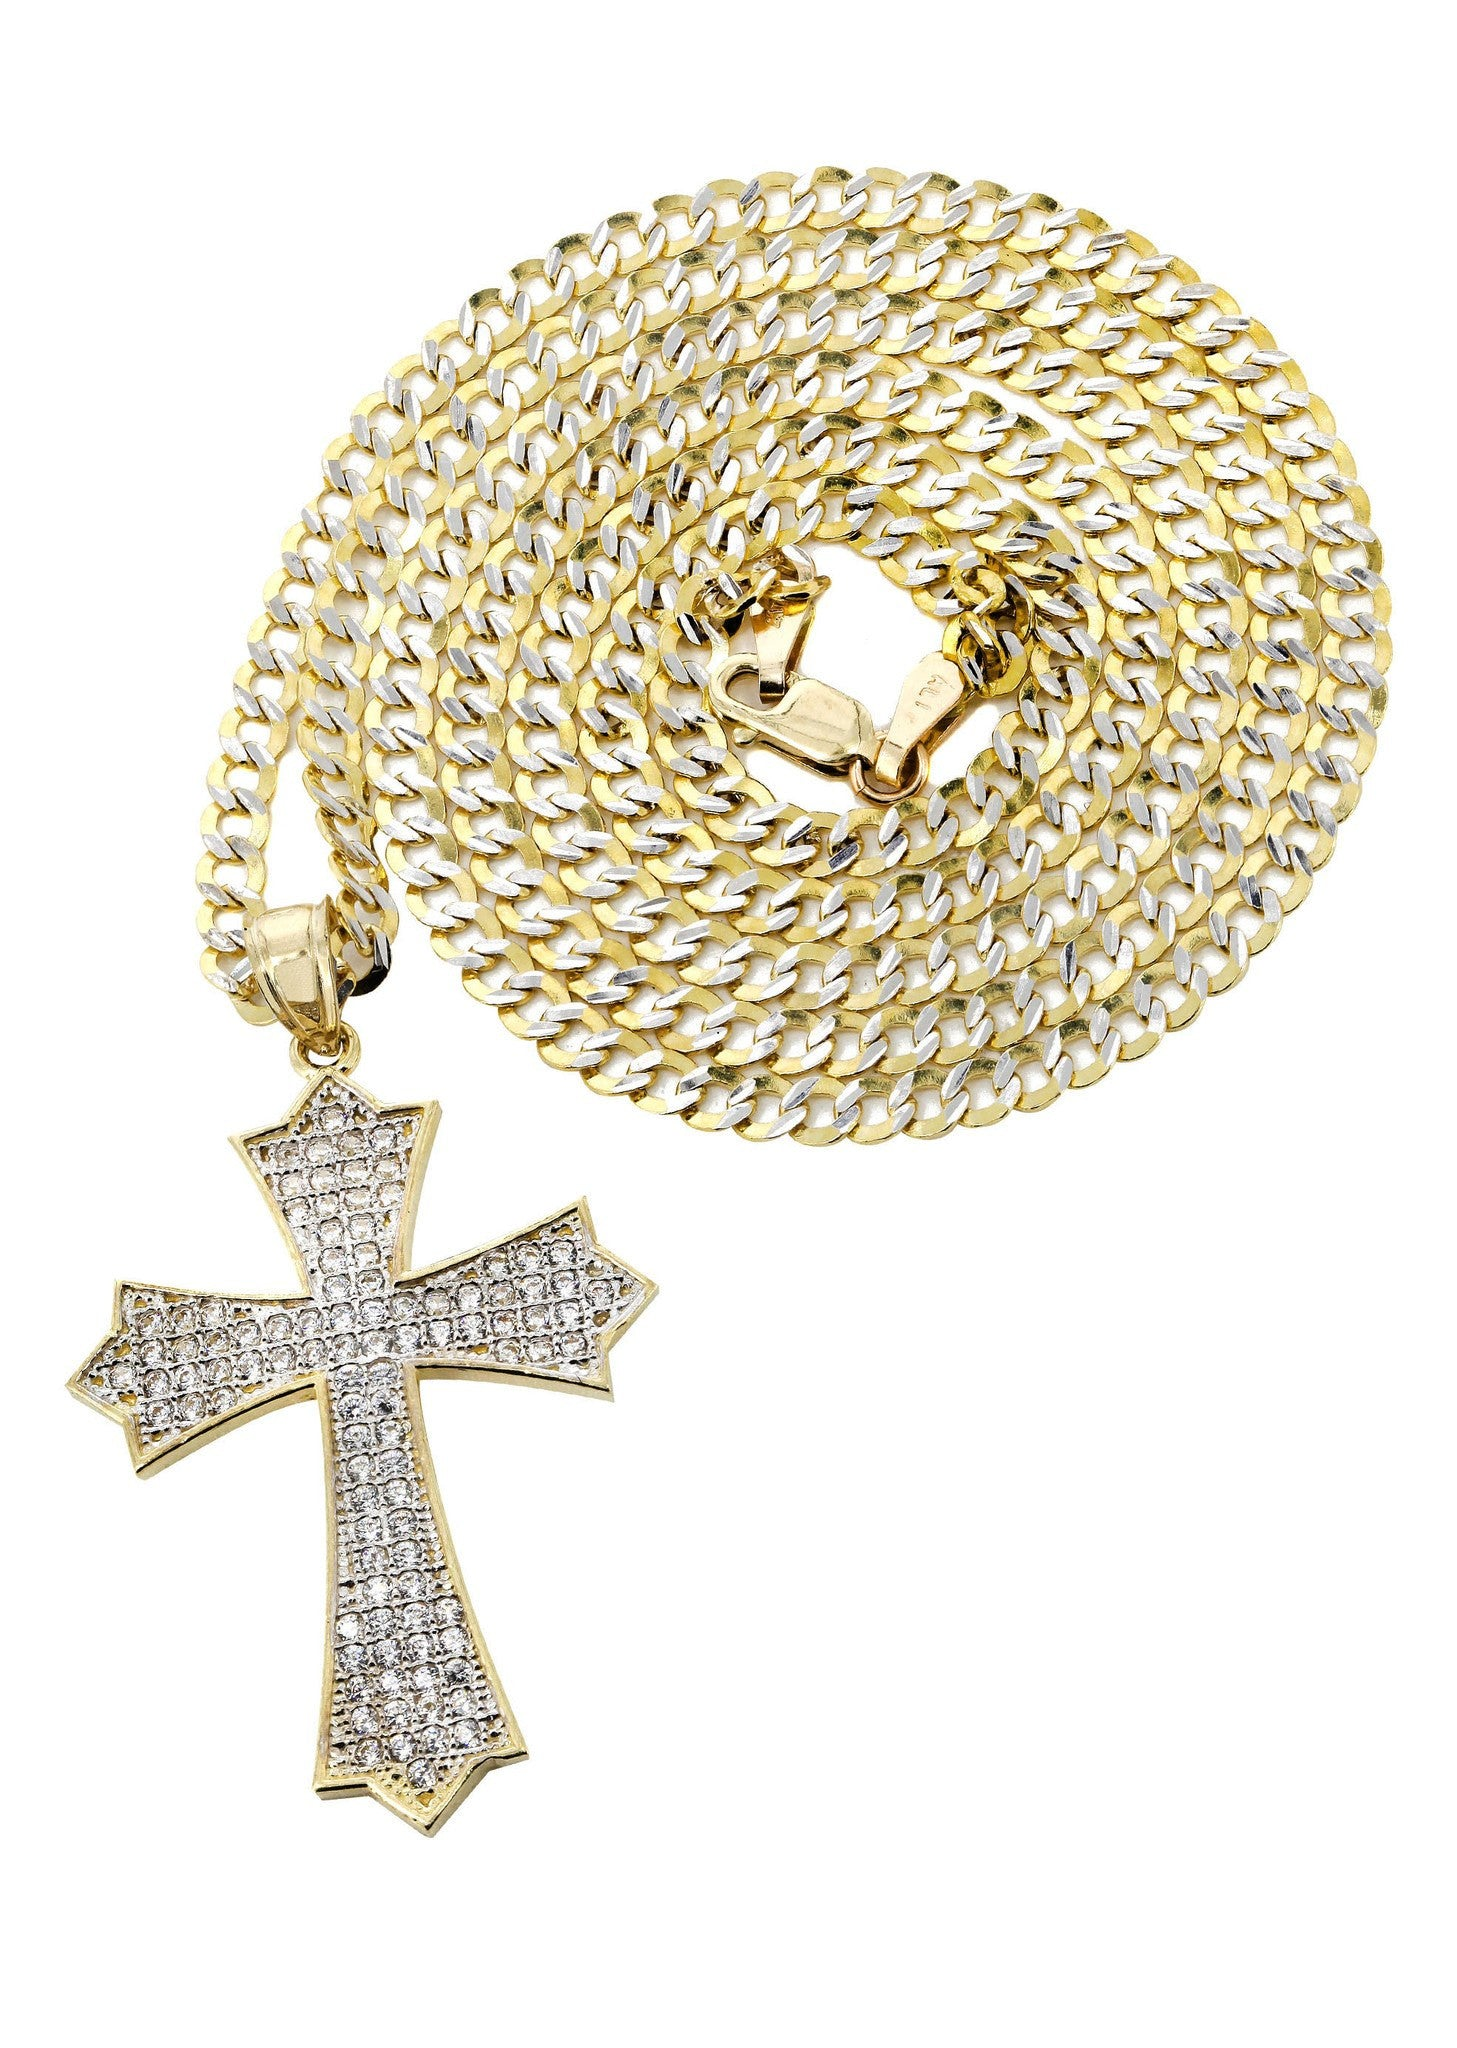 10K Yellow Gold Pave Cuban Chain & Cz Gold Cross Necklace / Appx. 9.4 Grams